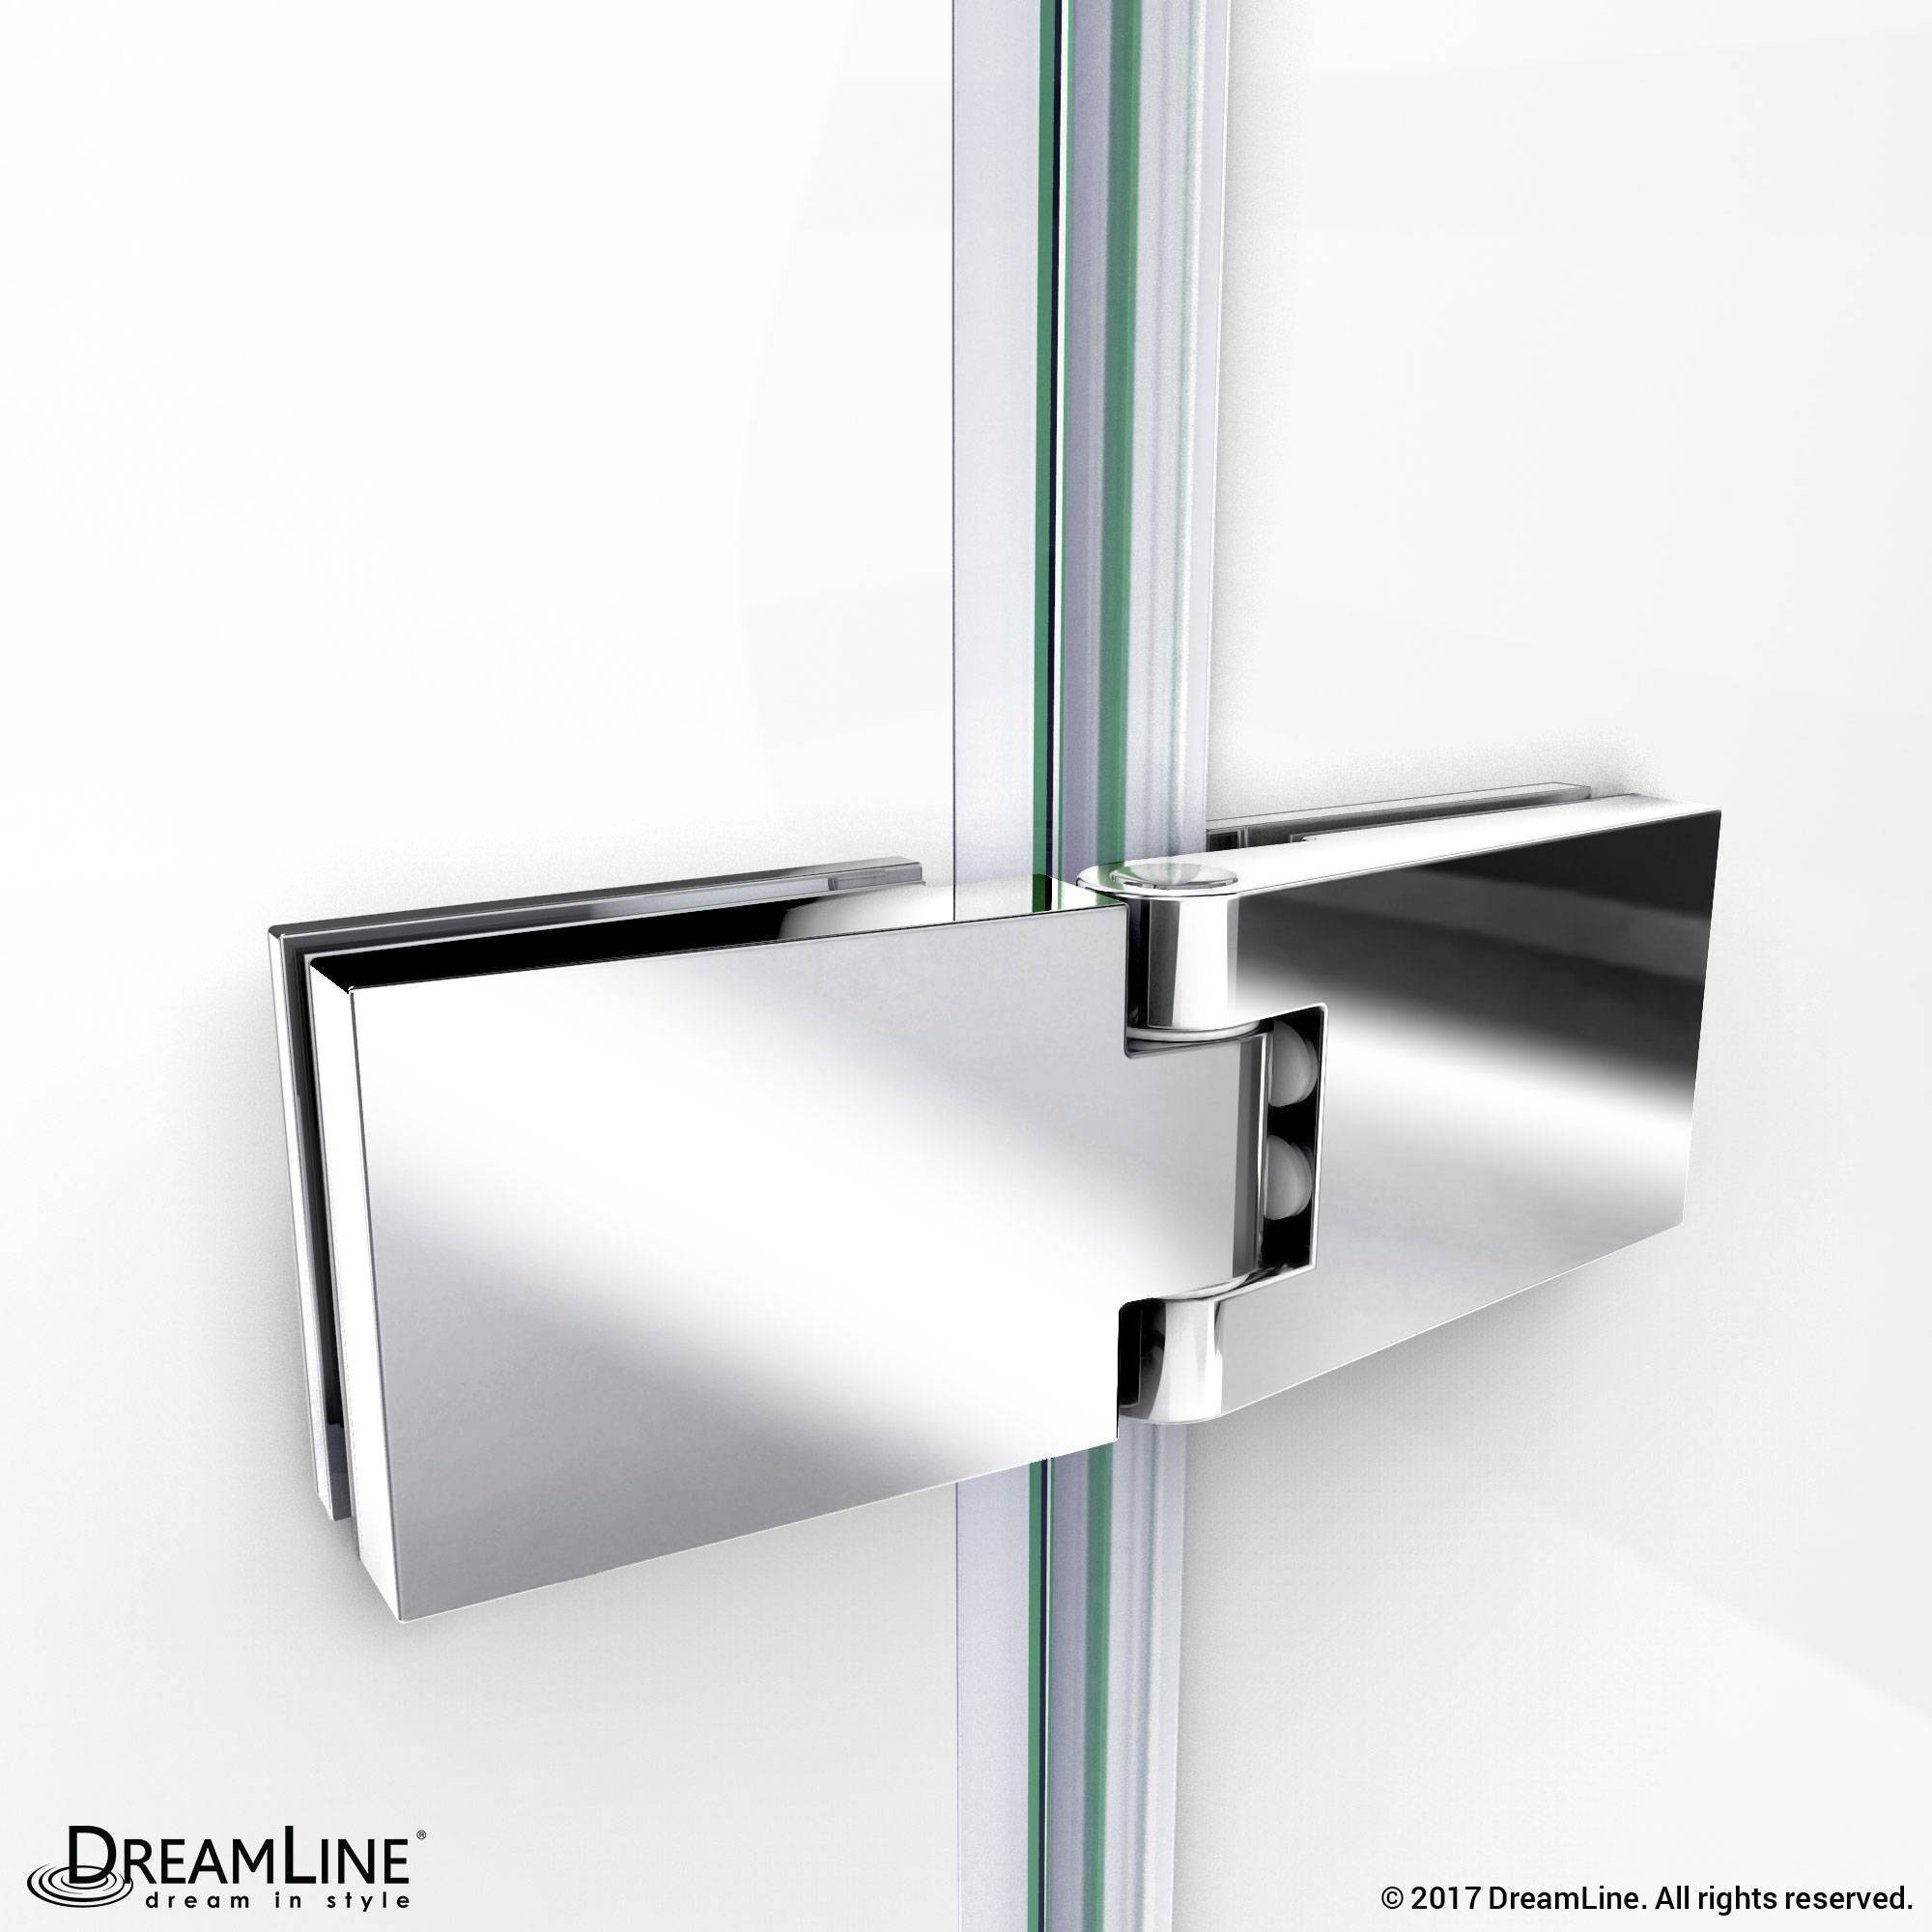 DreamLine Chrome Shower Door Hinge